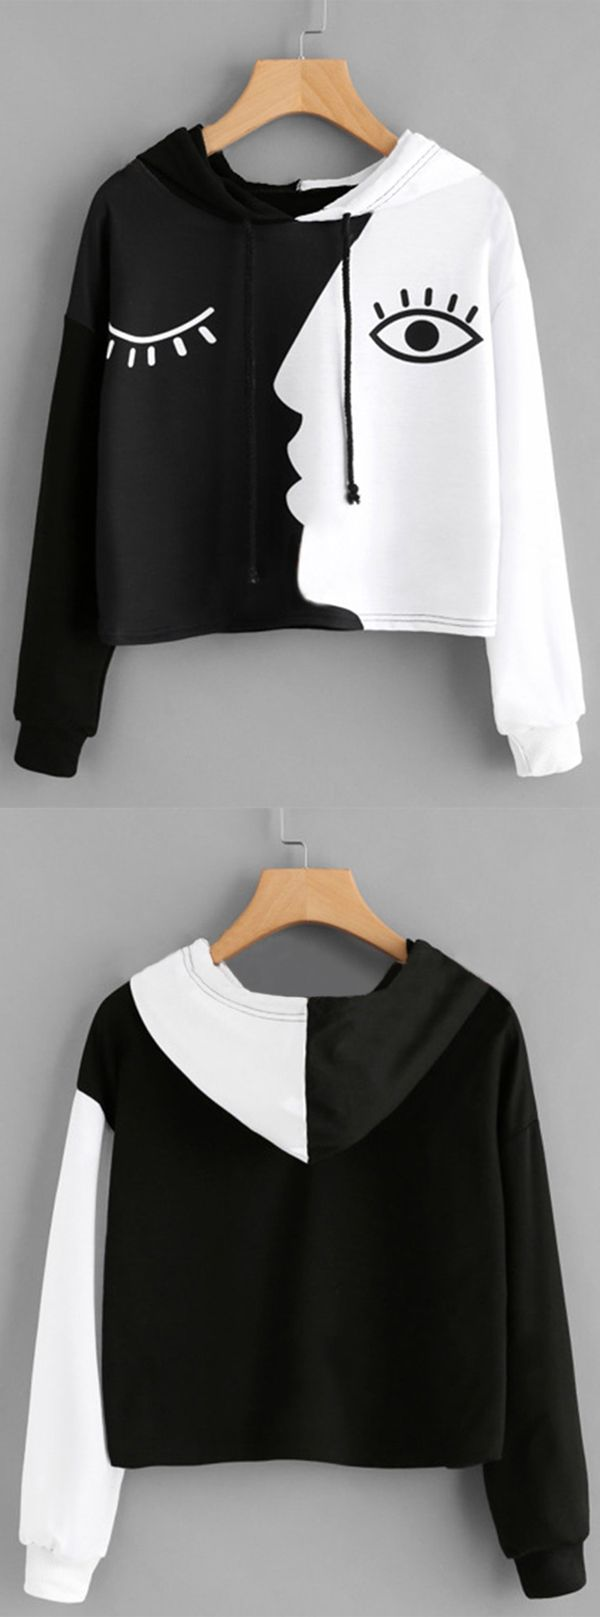 [Newchic Online Shopping] 46%OFF Casual Face Print Hoodies for Women